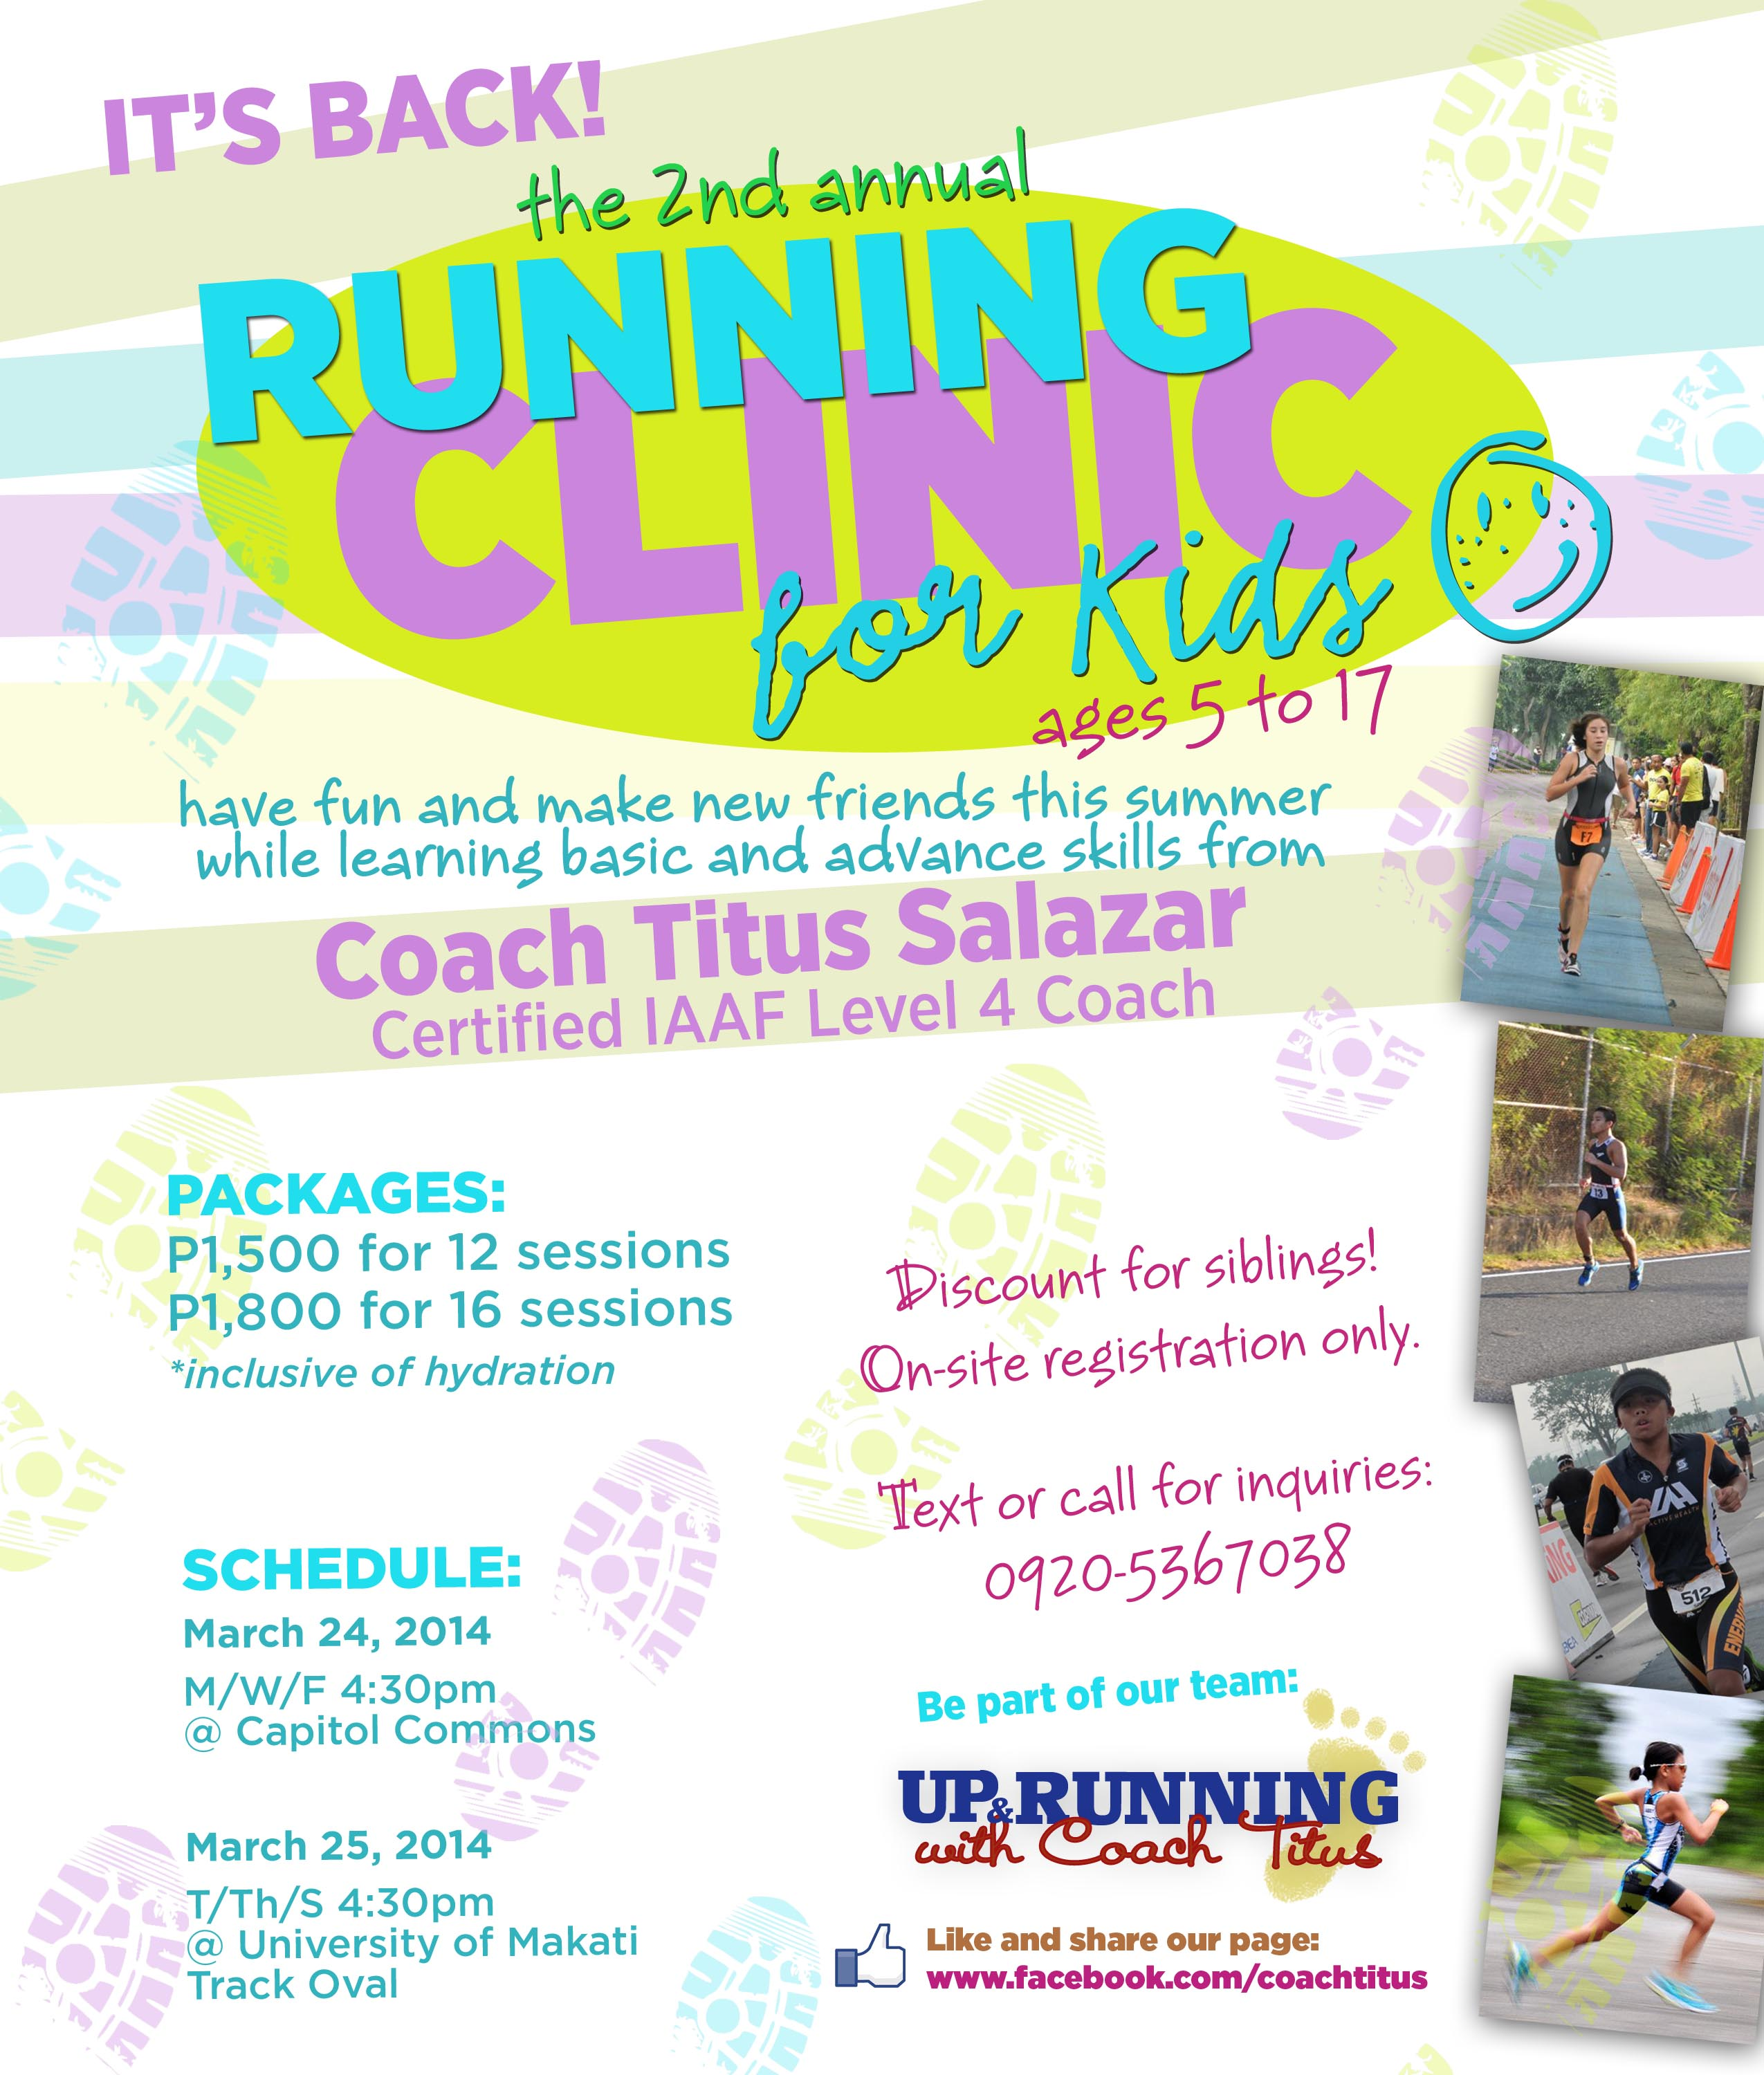 the-2nd-annual-running-clinic-for-kids-2014-poster